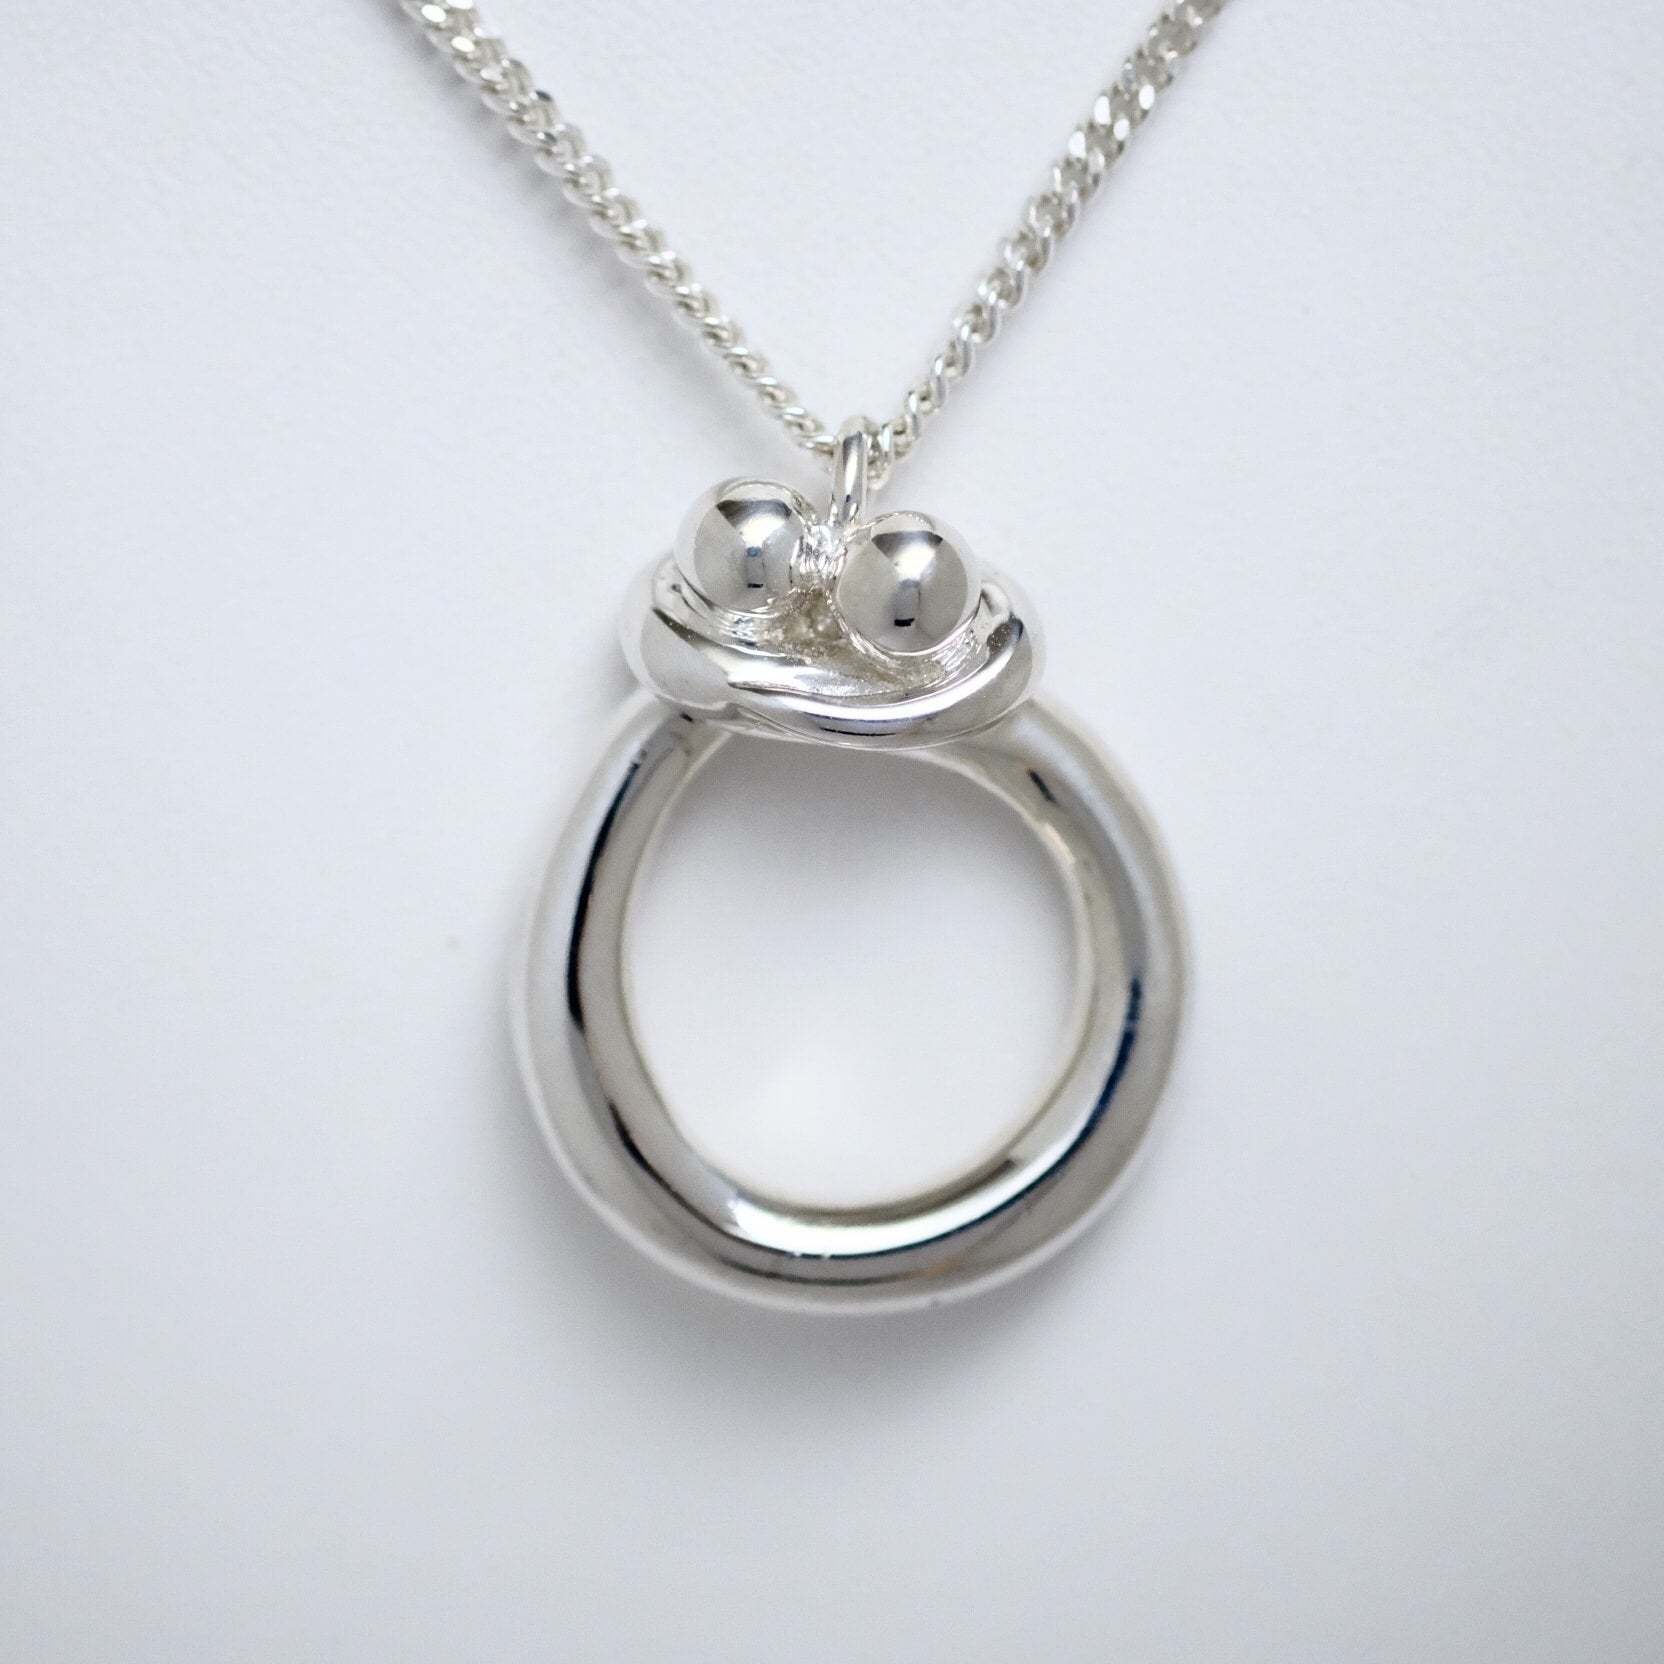 Embrace sterling silver pendant by Line of Love Jewellery